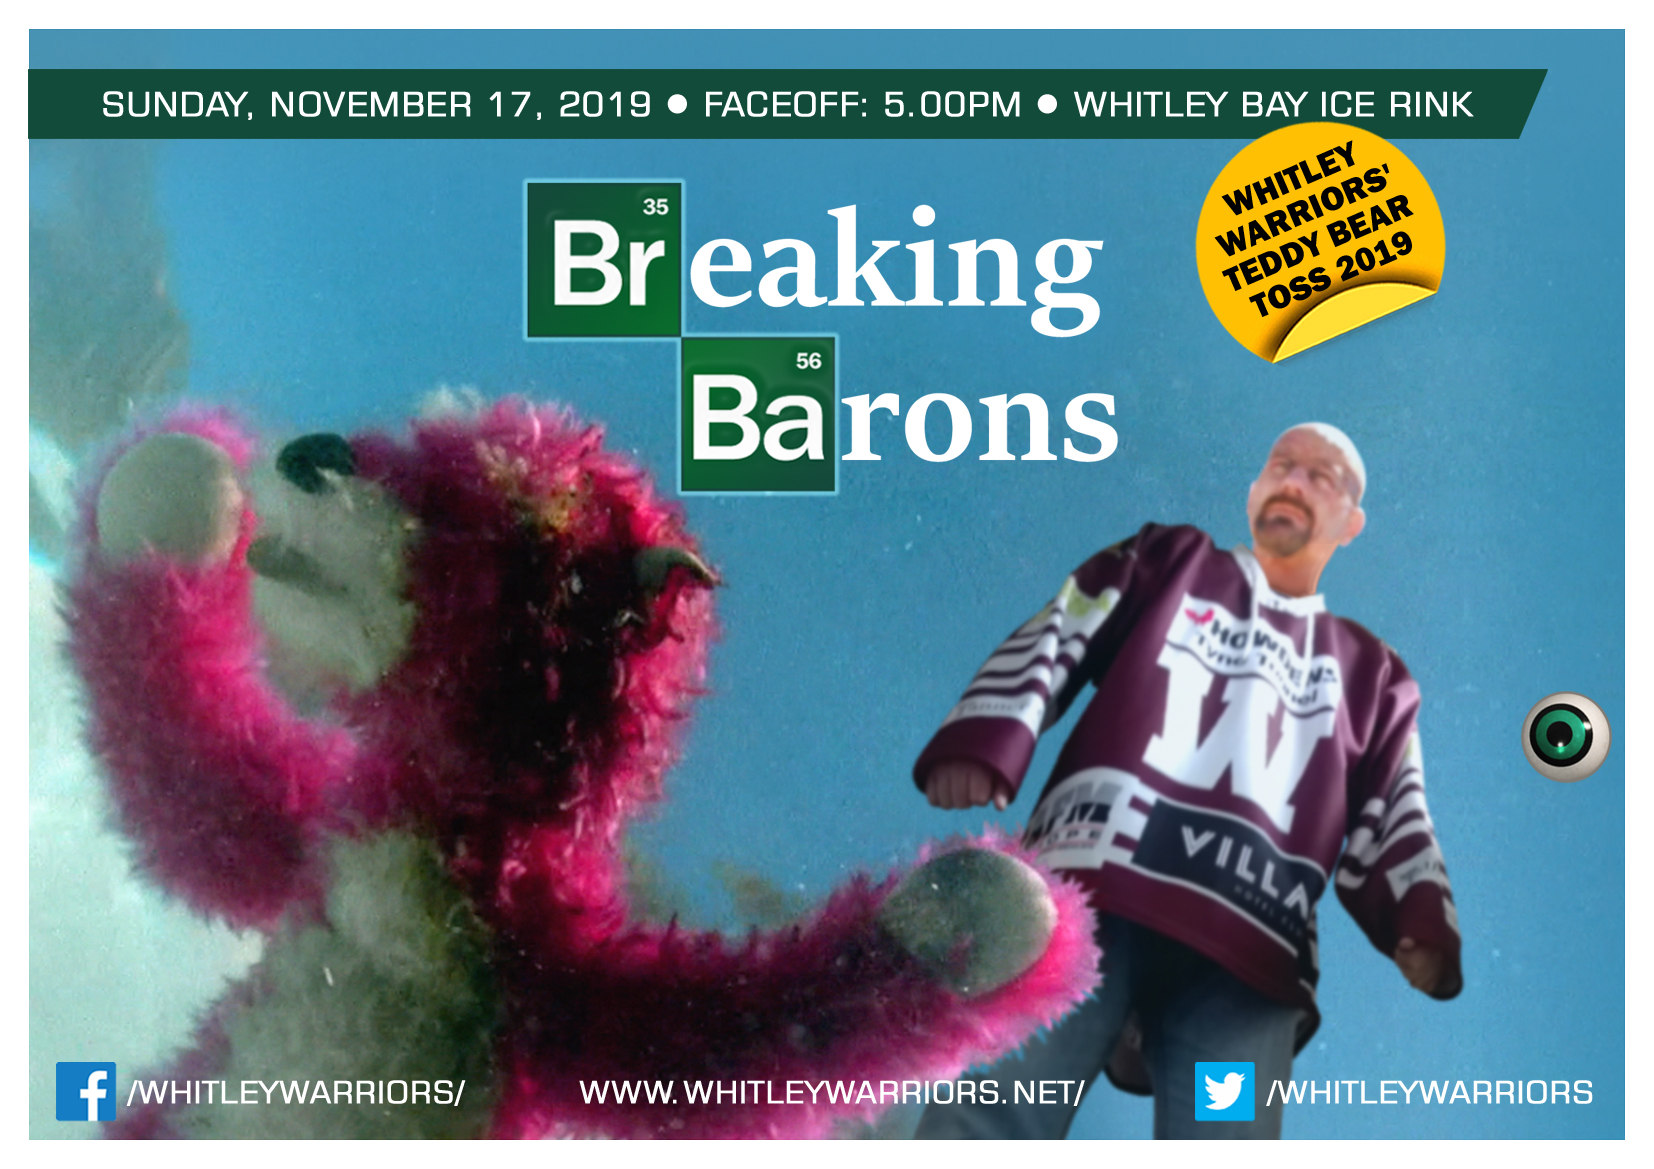 Whitley Warriors vs Solihull Barons @ Whitley Bay Ice Rink, Sunday 17 November 2019, face off 5pm - the teddy toss game!